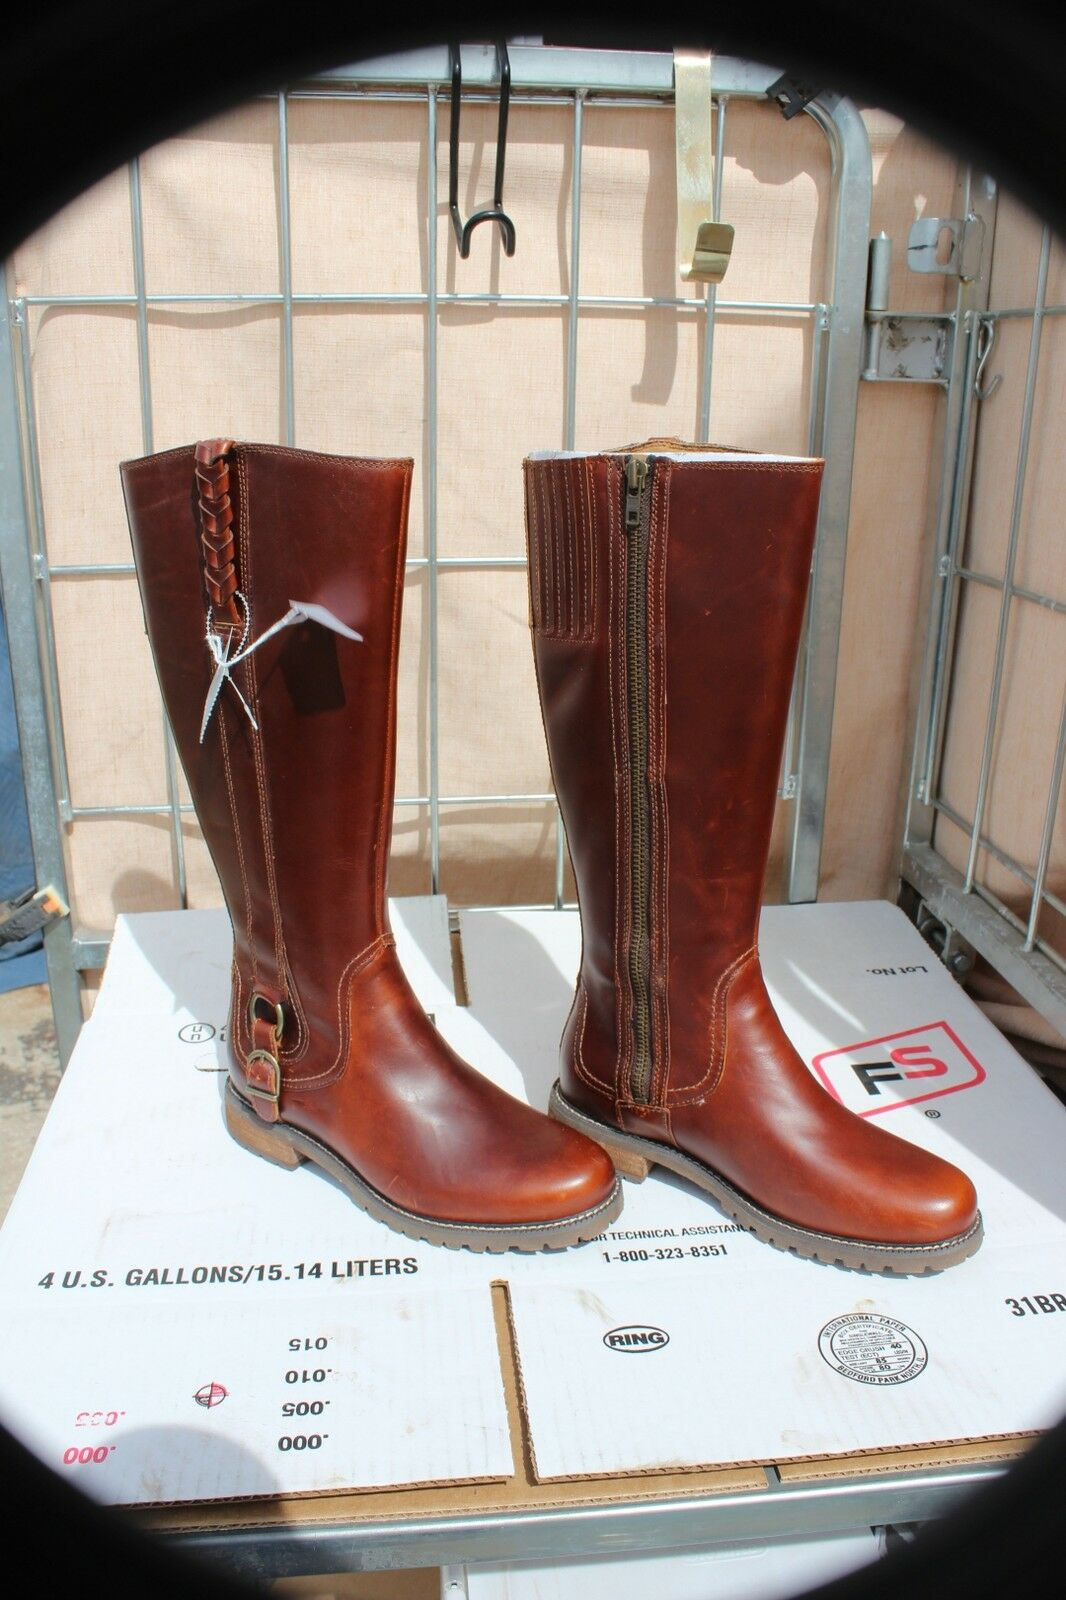 26-17 New Womens zipper Ariat Boots 61 2 B  water resist beautiful color was 260